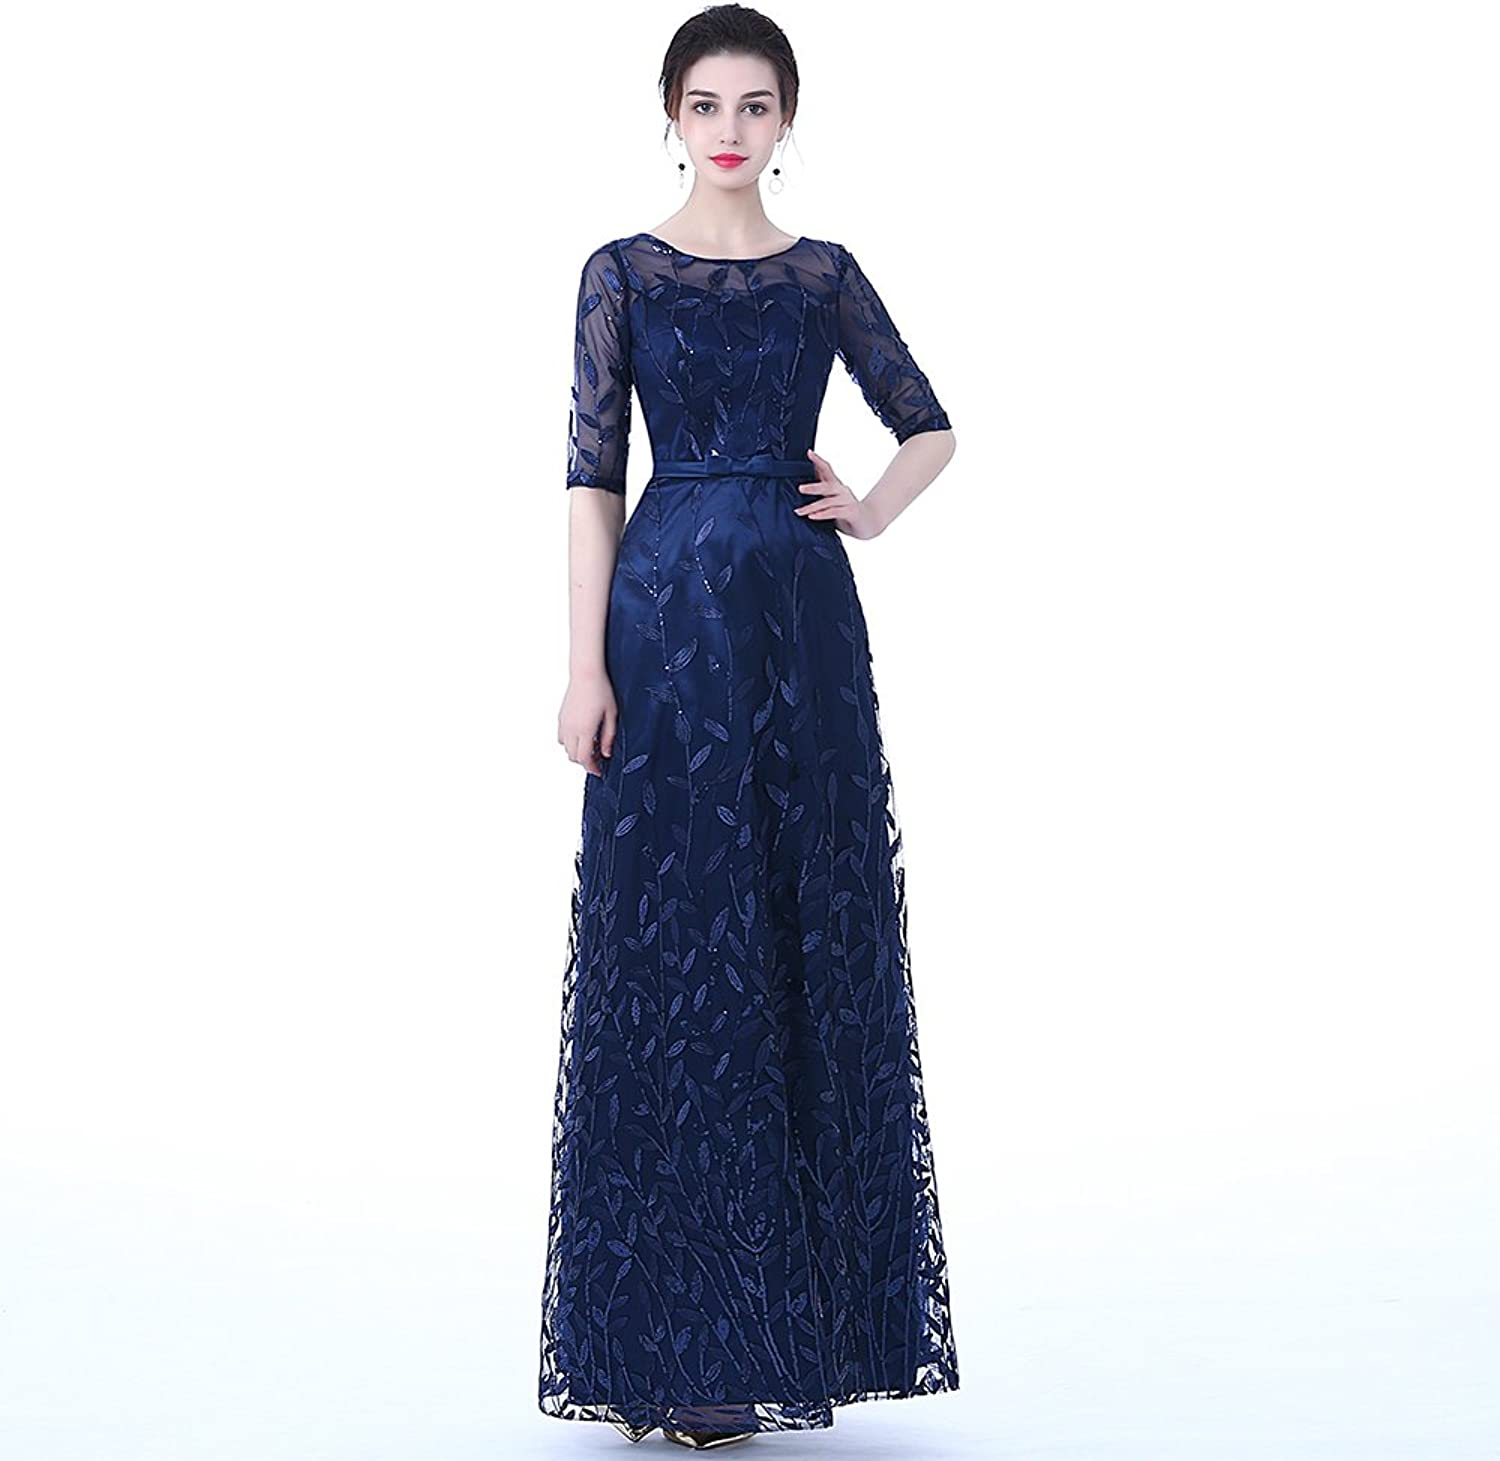 DongCMY 2018 New Burgundy Lace Embroidery Luxury Satin Half Sleeved Long Evening Dress Elegant Gown